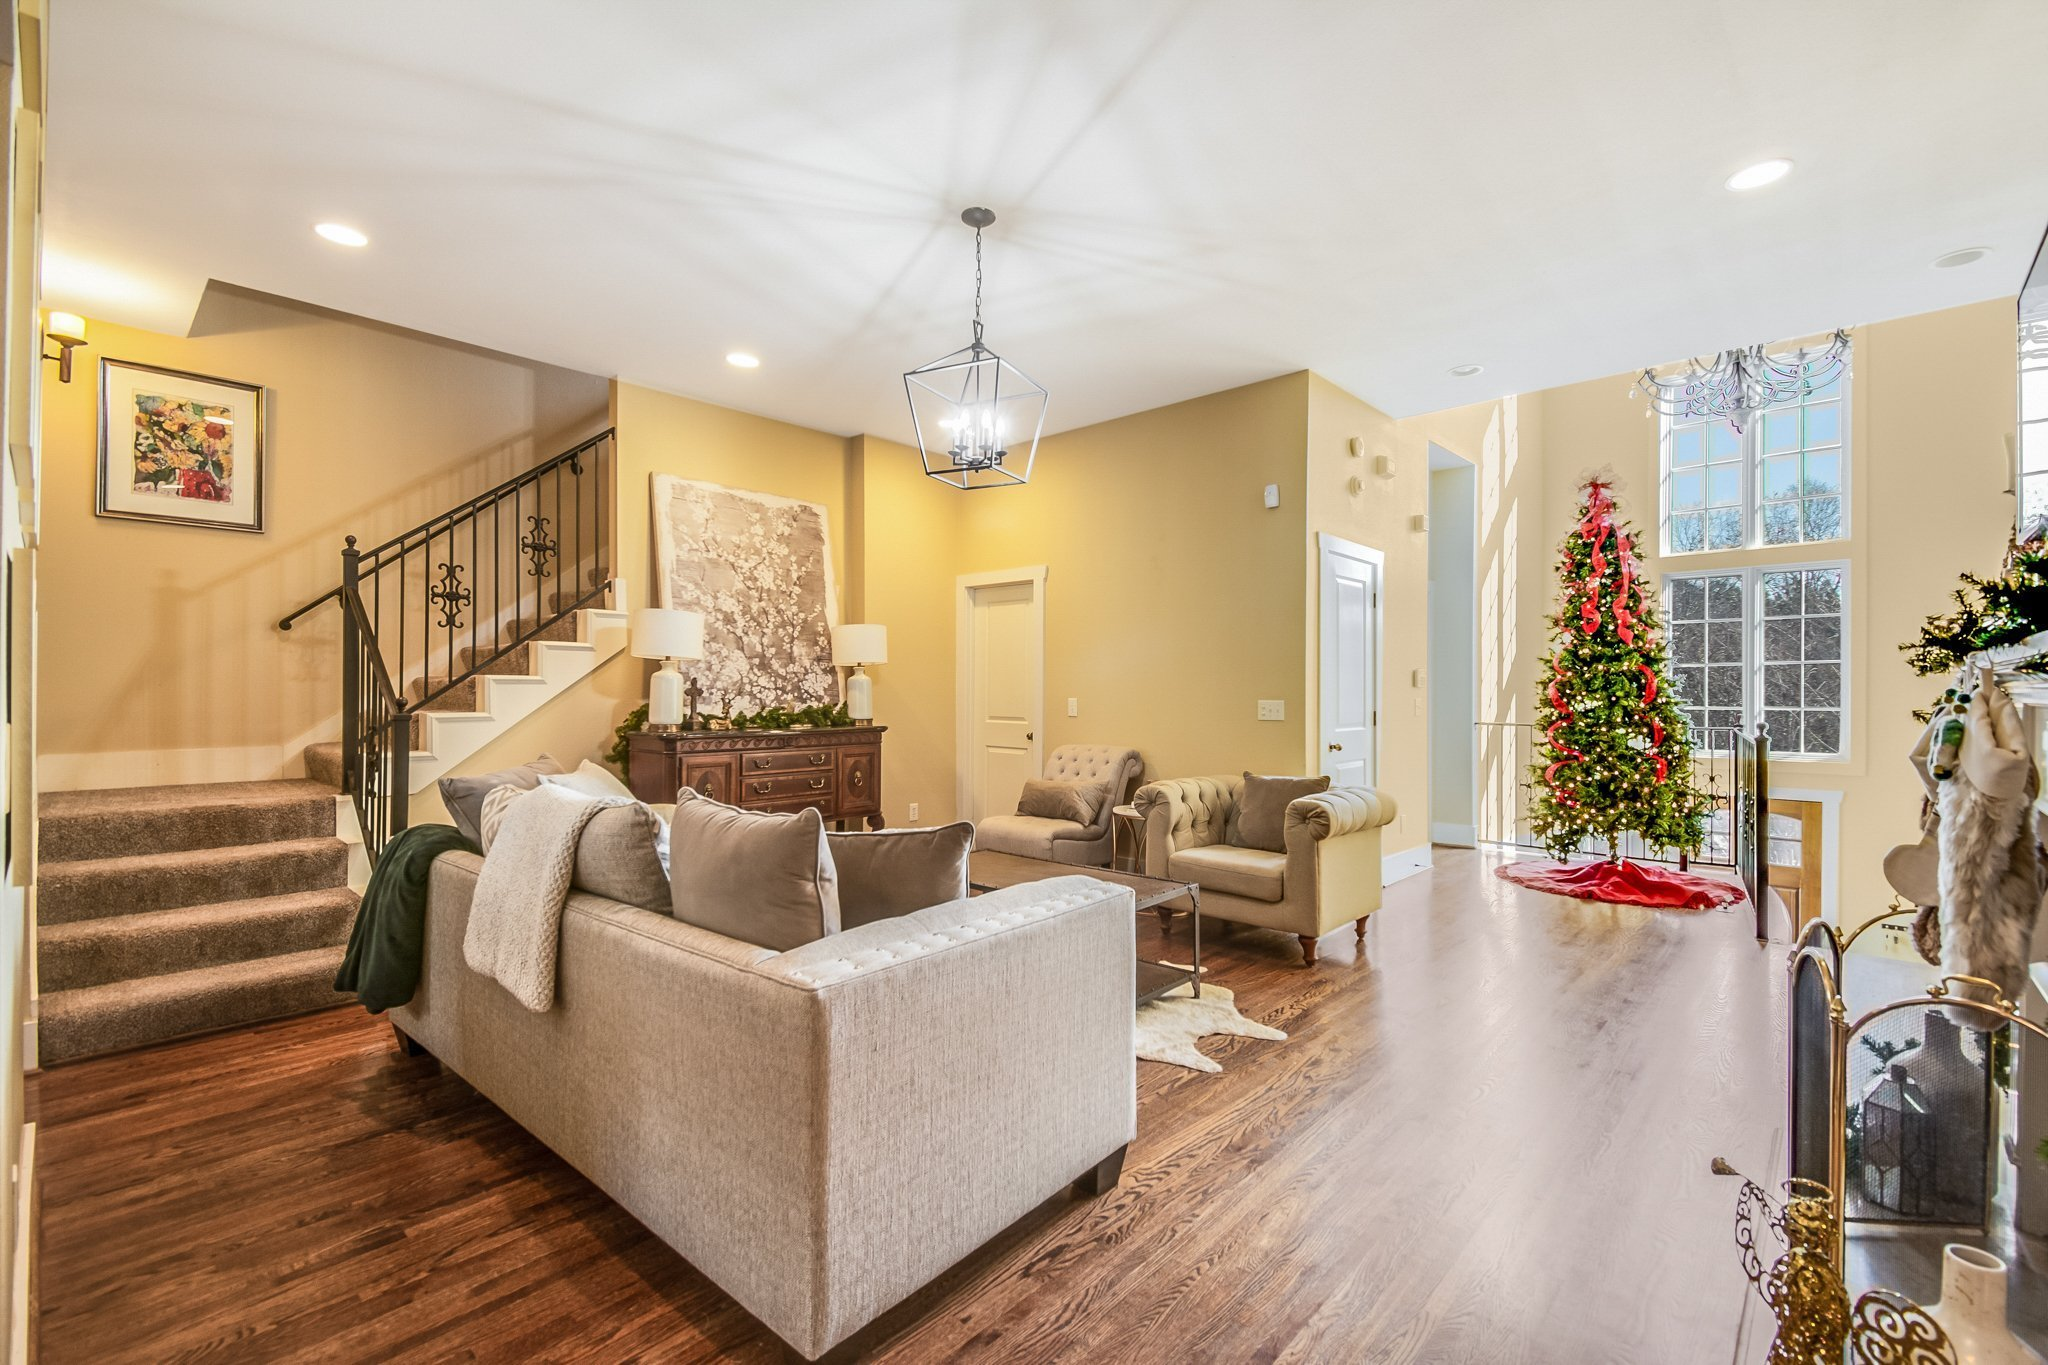 living room shot by real estate photographer Aly Hathcock